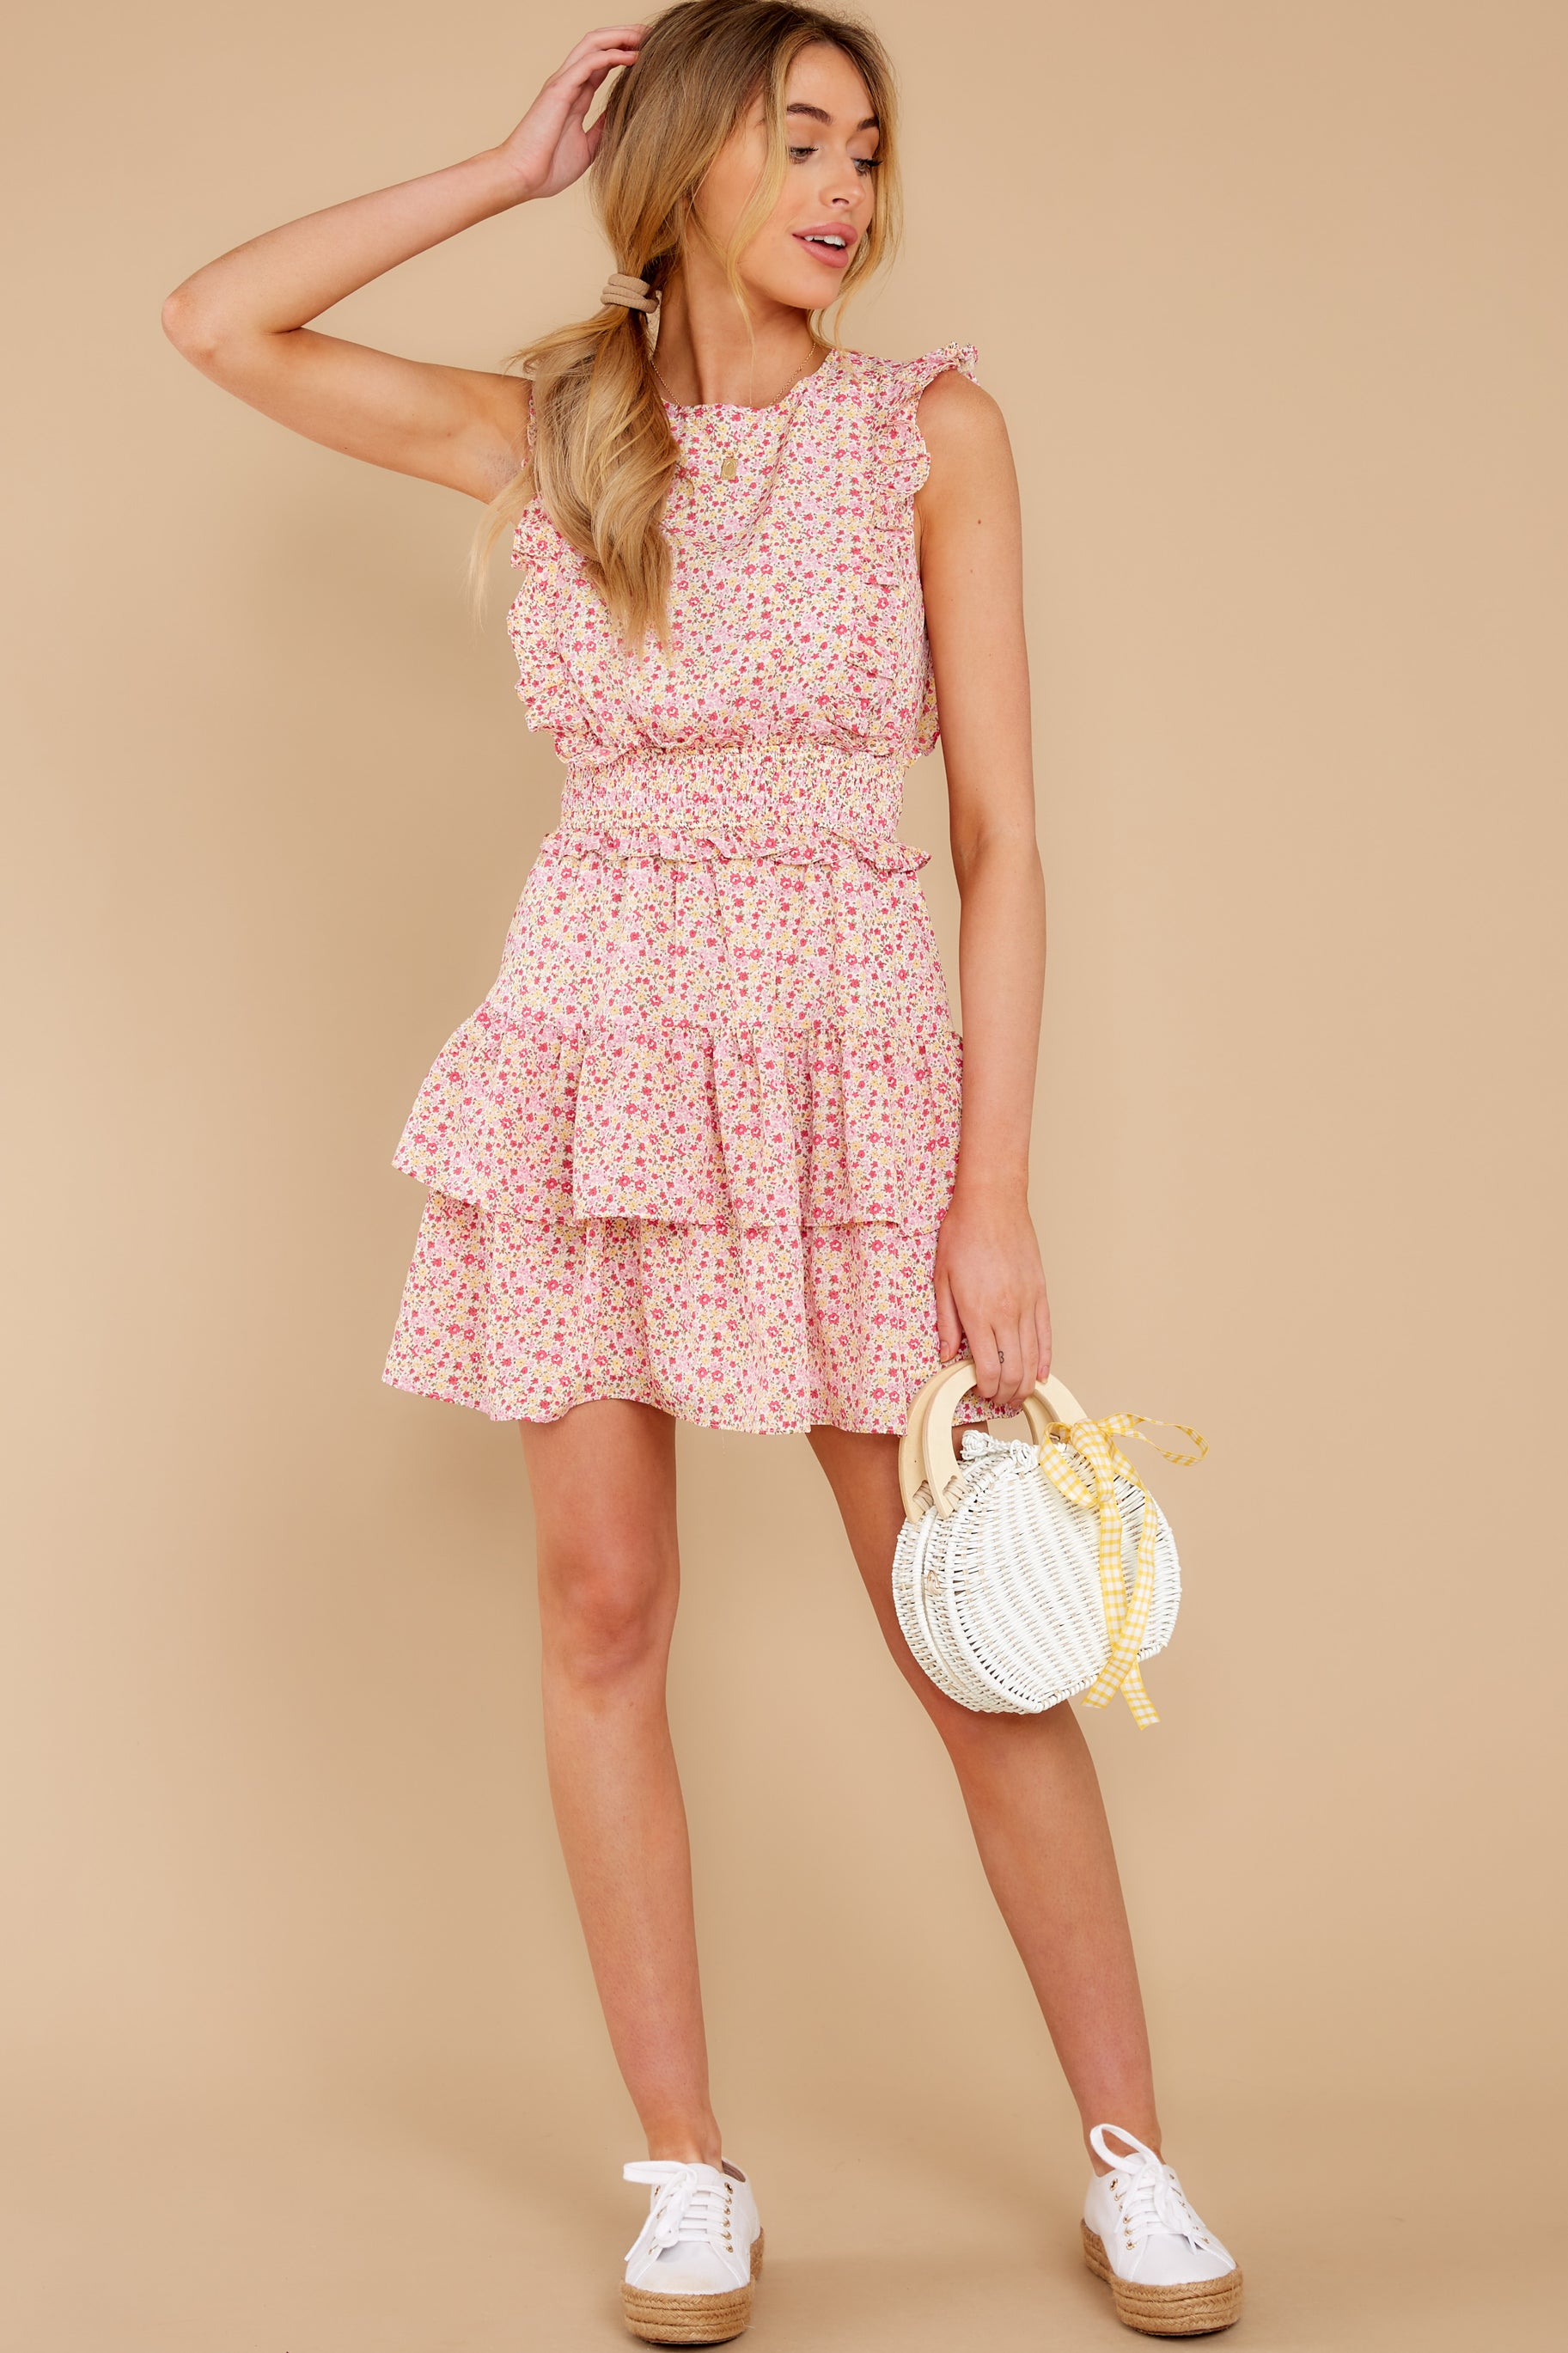 2 Spin Me Baby Pink Multi Floral Print Dress at reddress.com